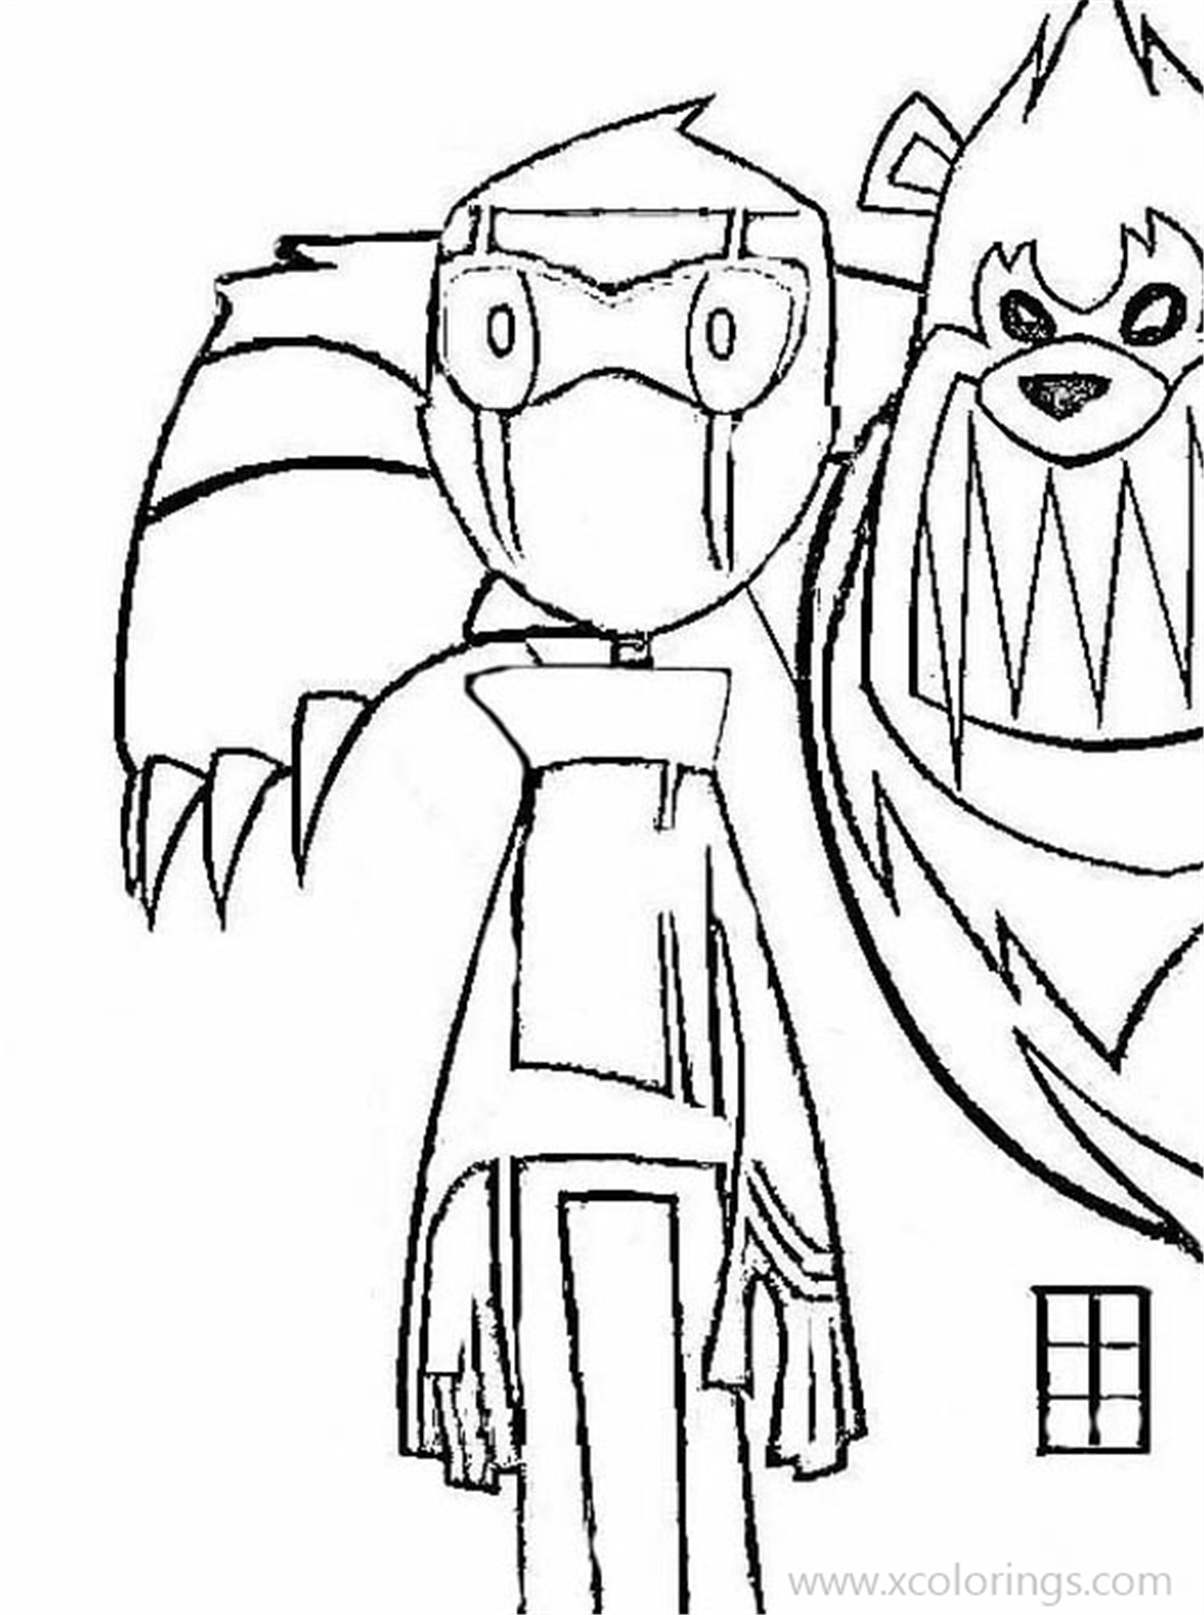 Randy Cunningham Coloring Pages Ninja And Beast Xcolorings Com